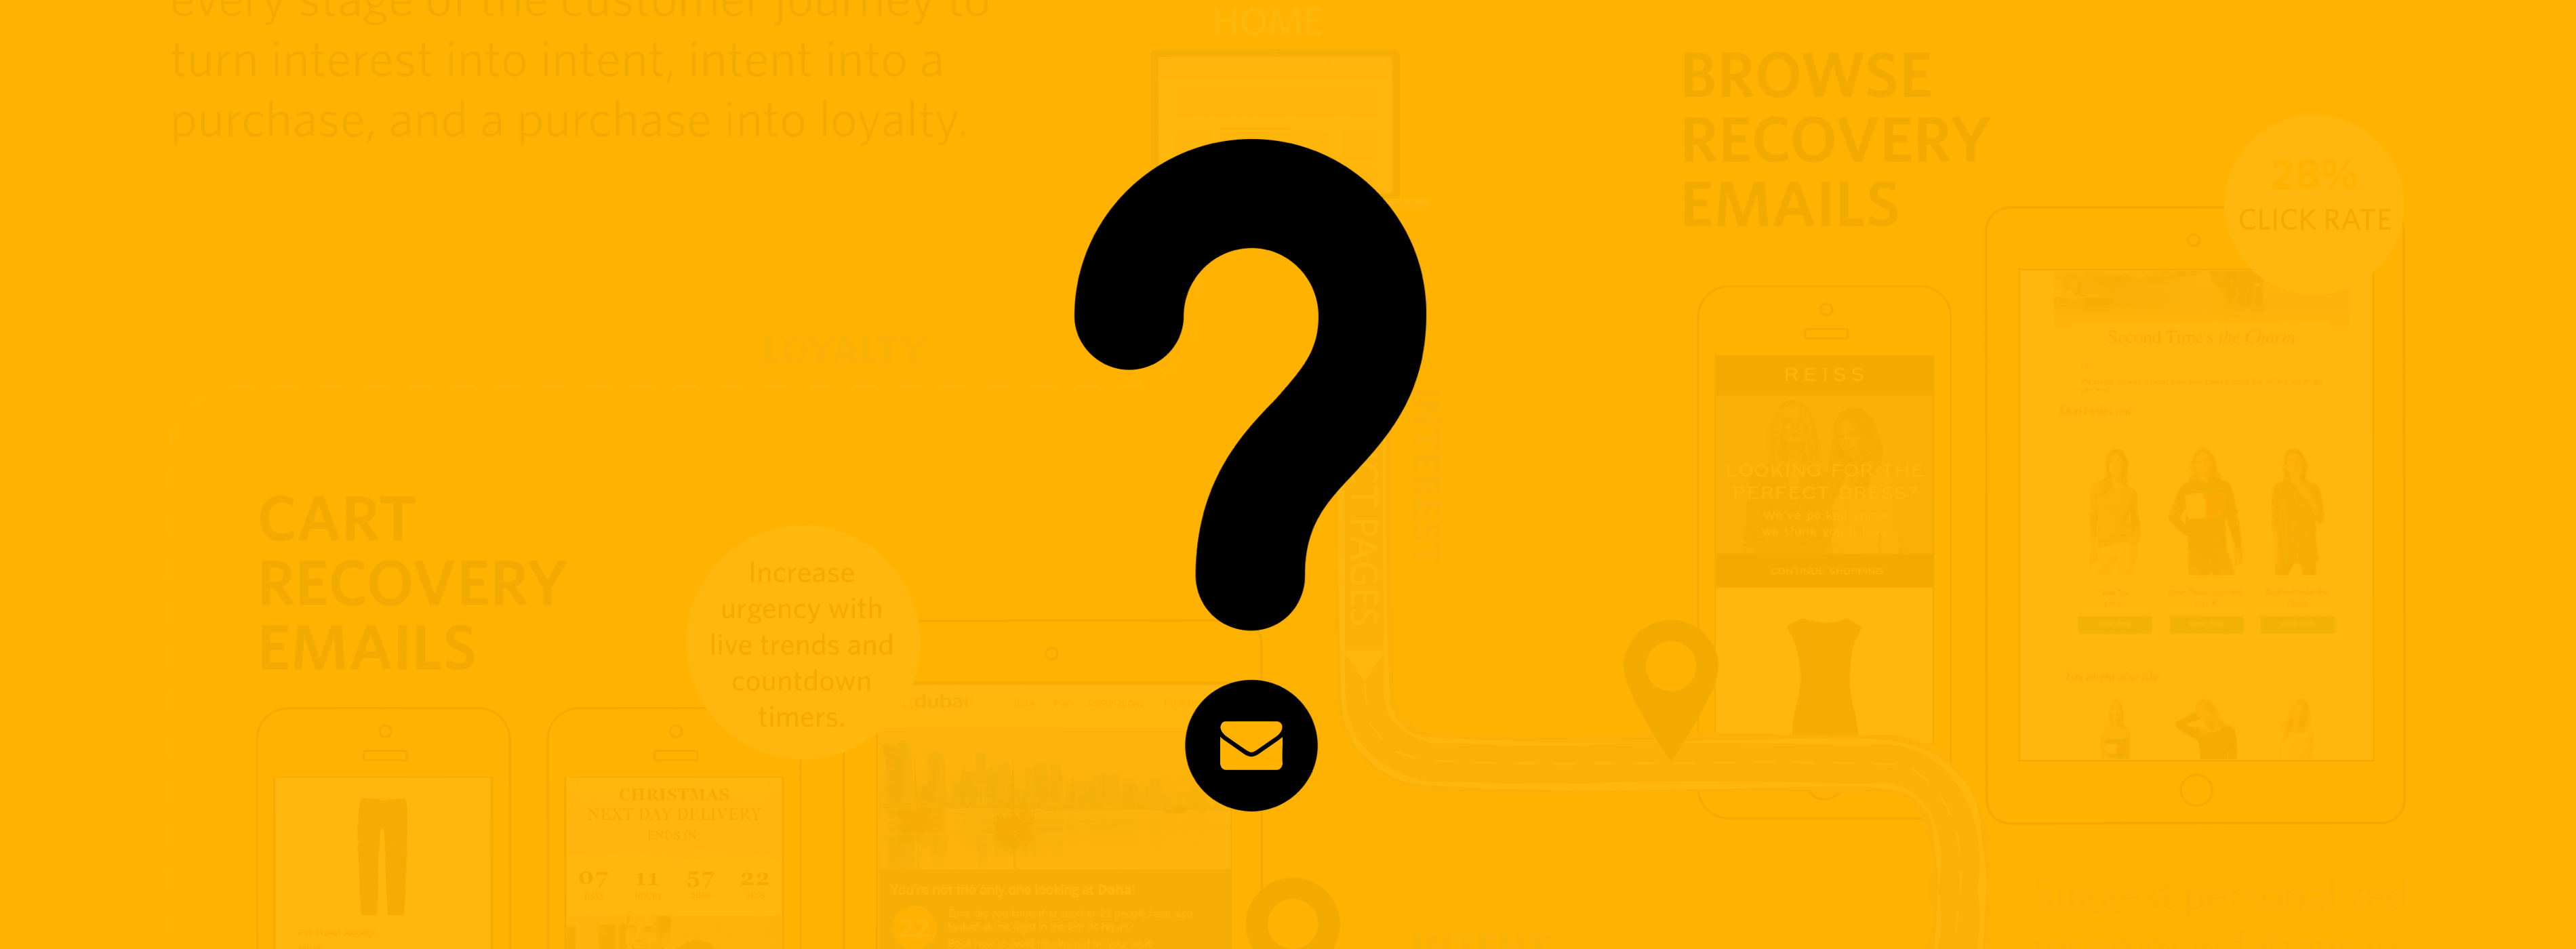 [Infographic] Are You Using Email at Every Stage of the Customer Journey?